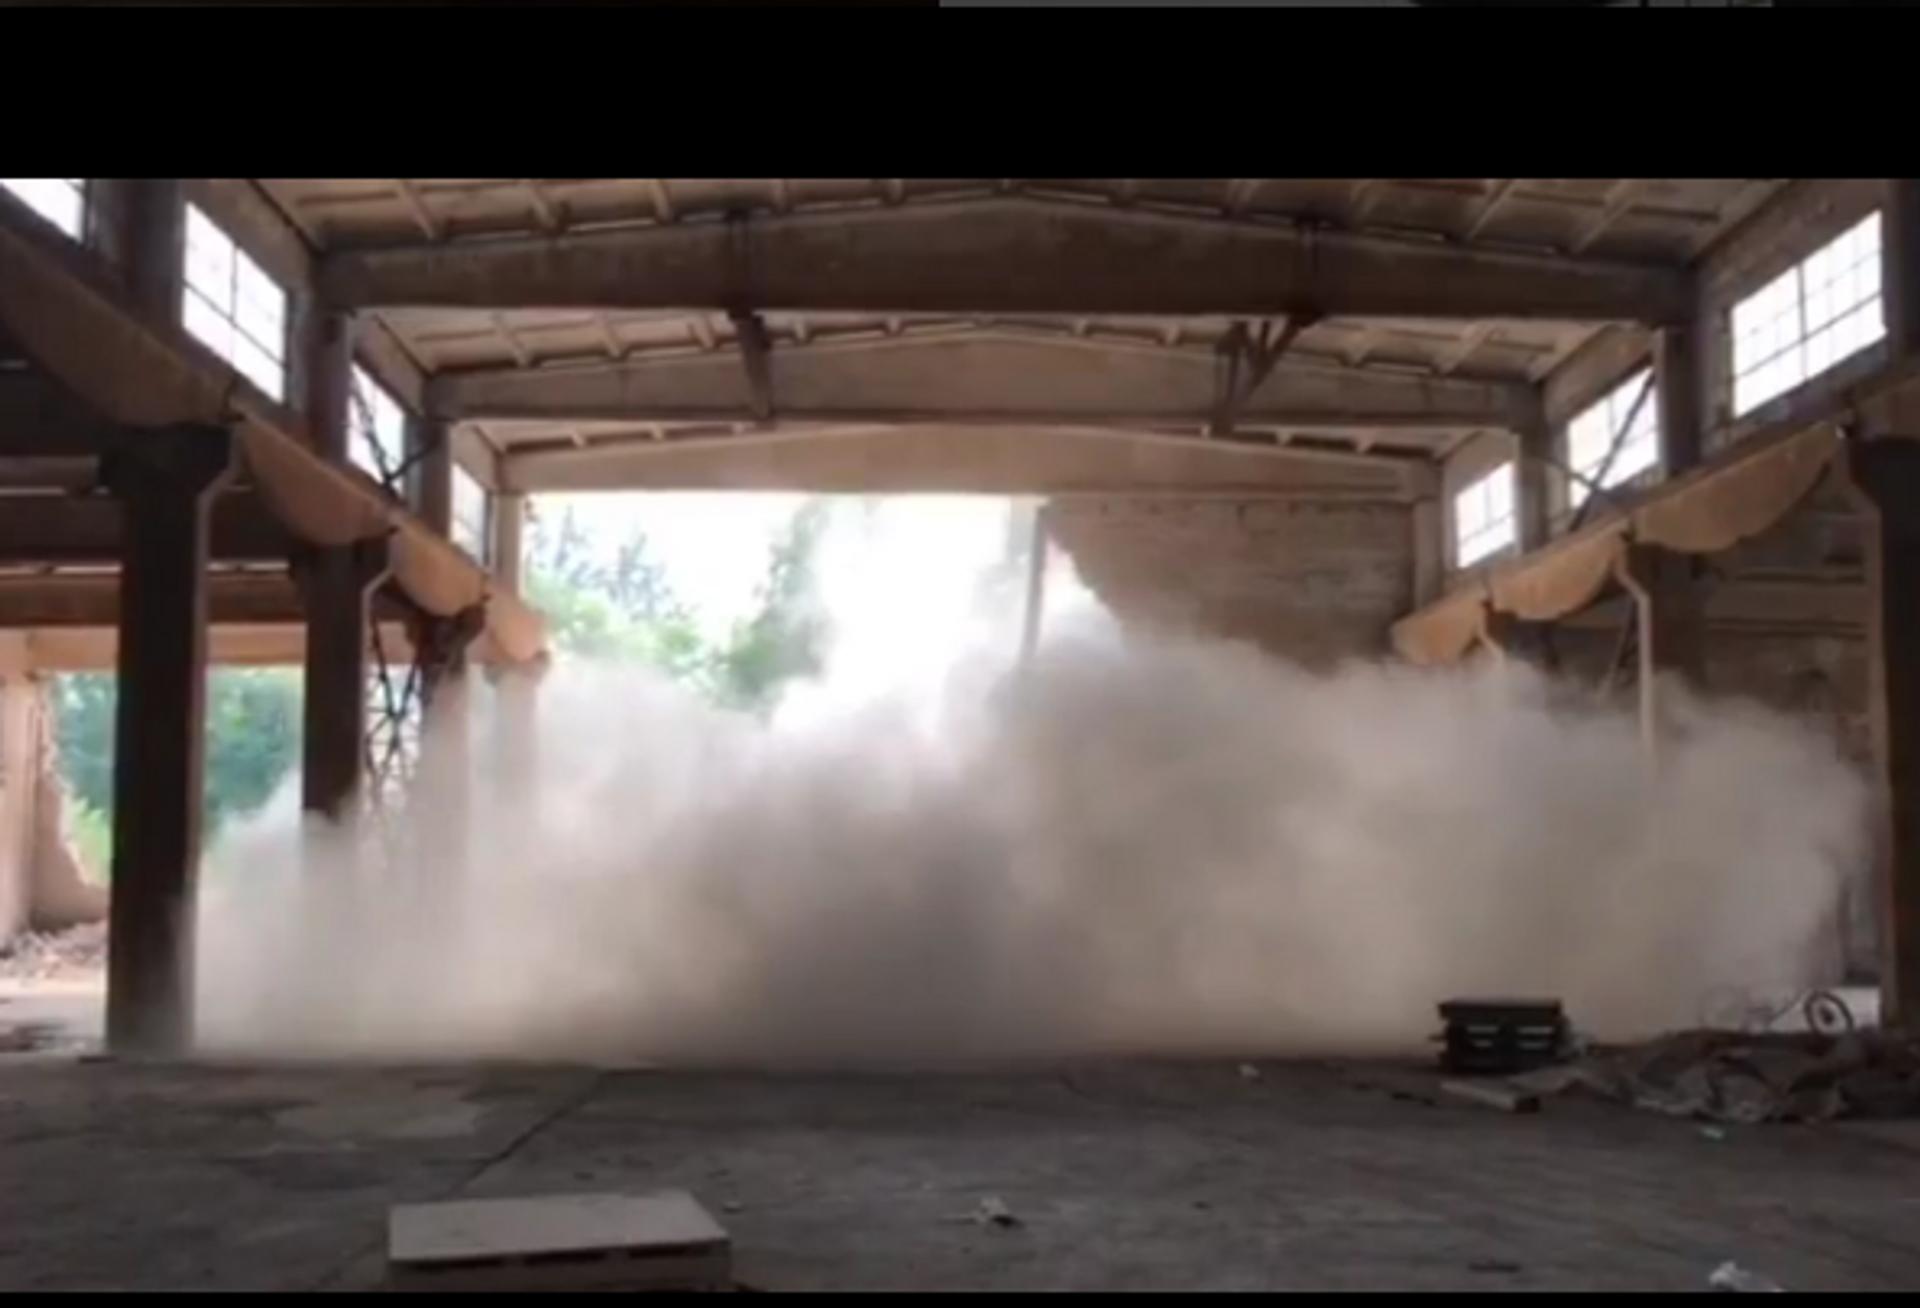 Ai Weiwei's studio has been destroyed as part of a gentrification drive by the Beijing authorities aiww/Instagram